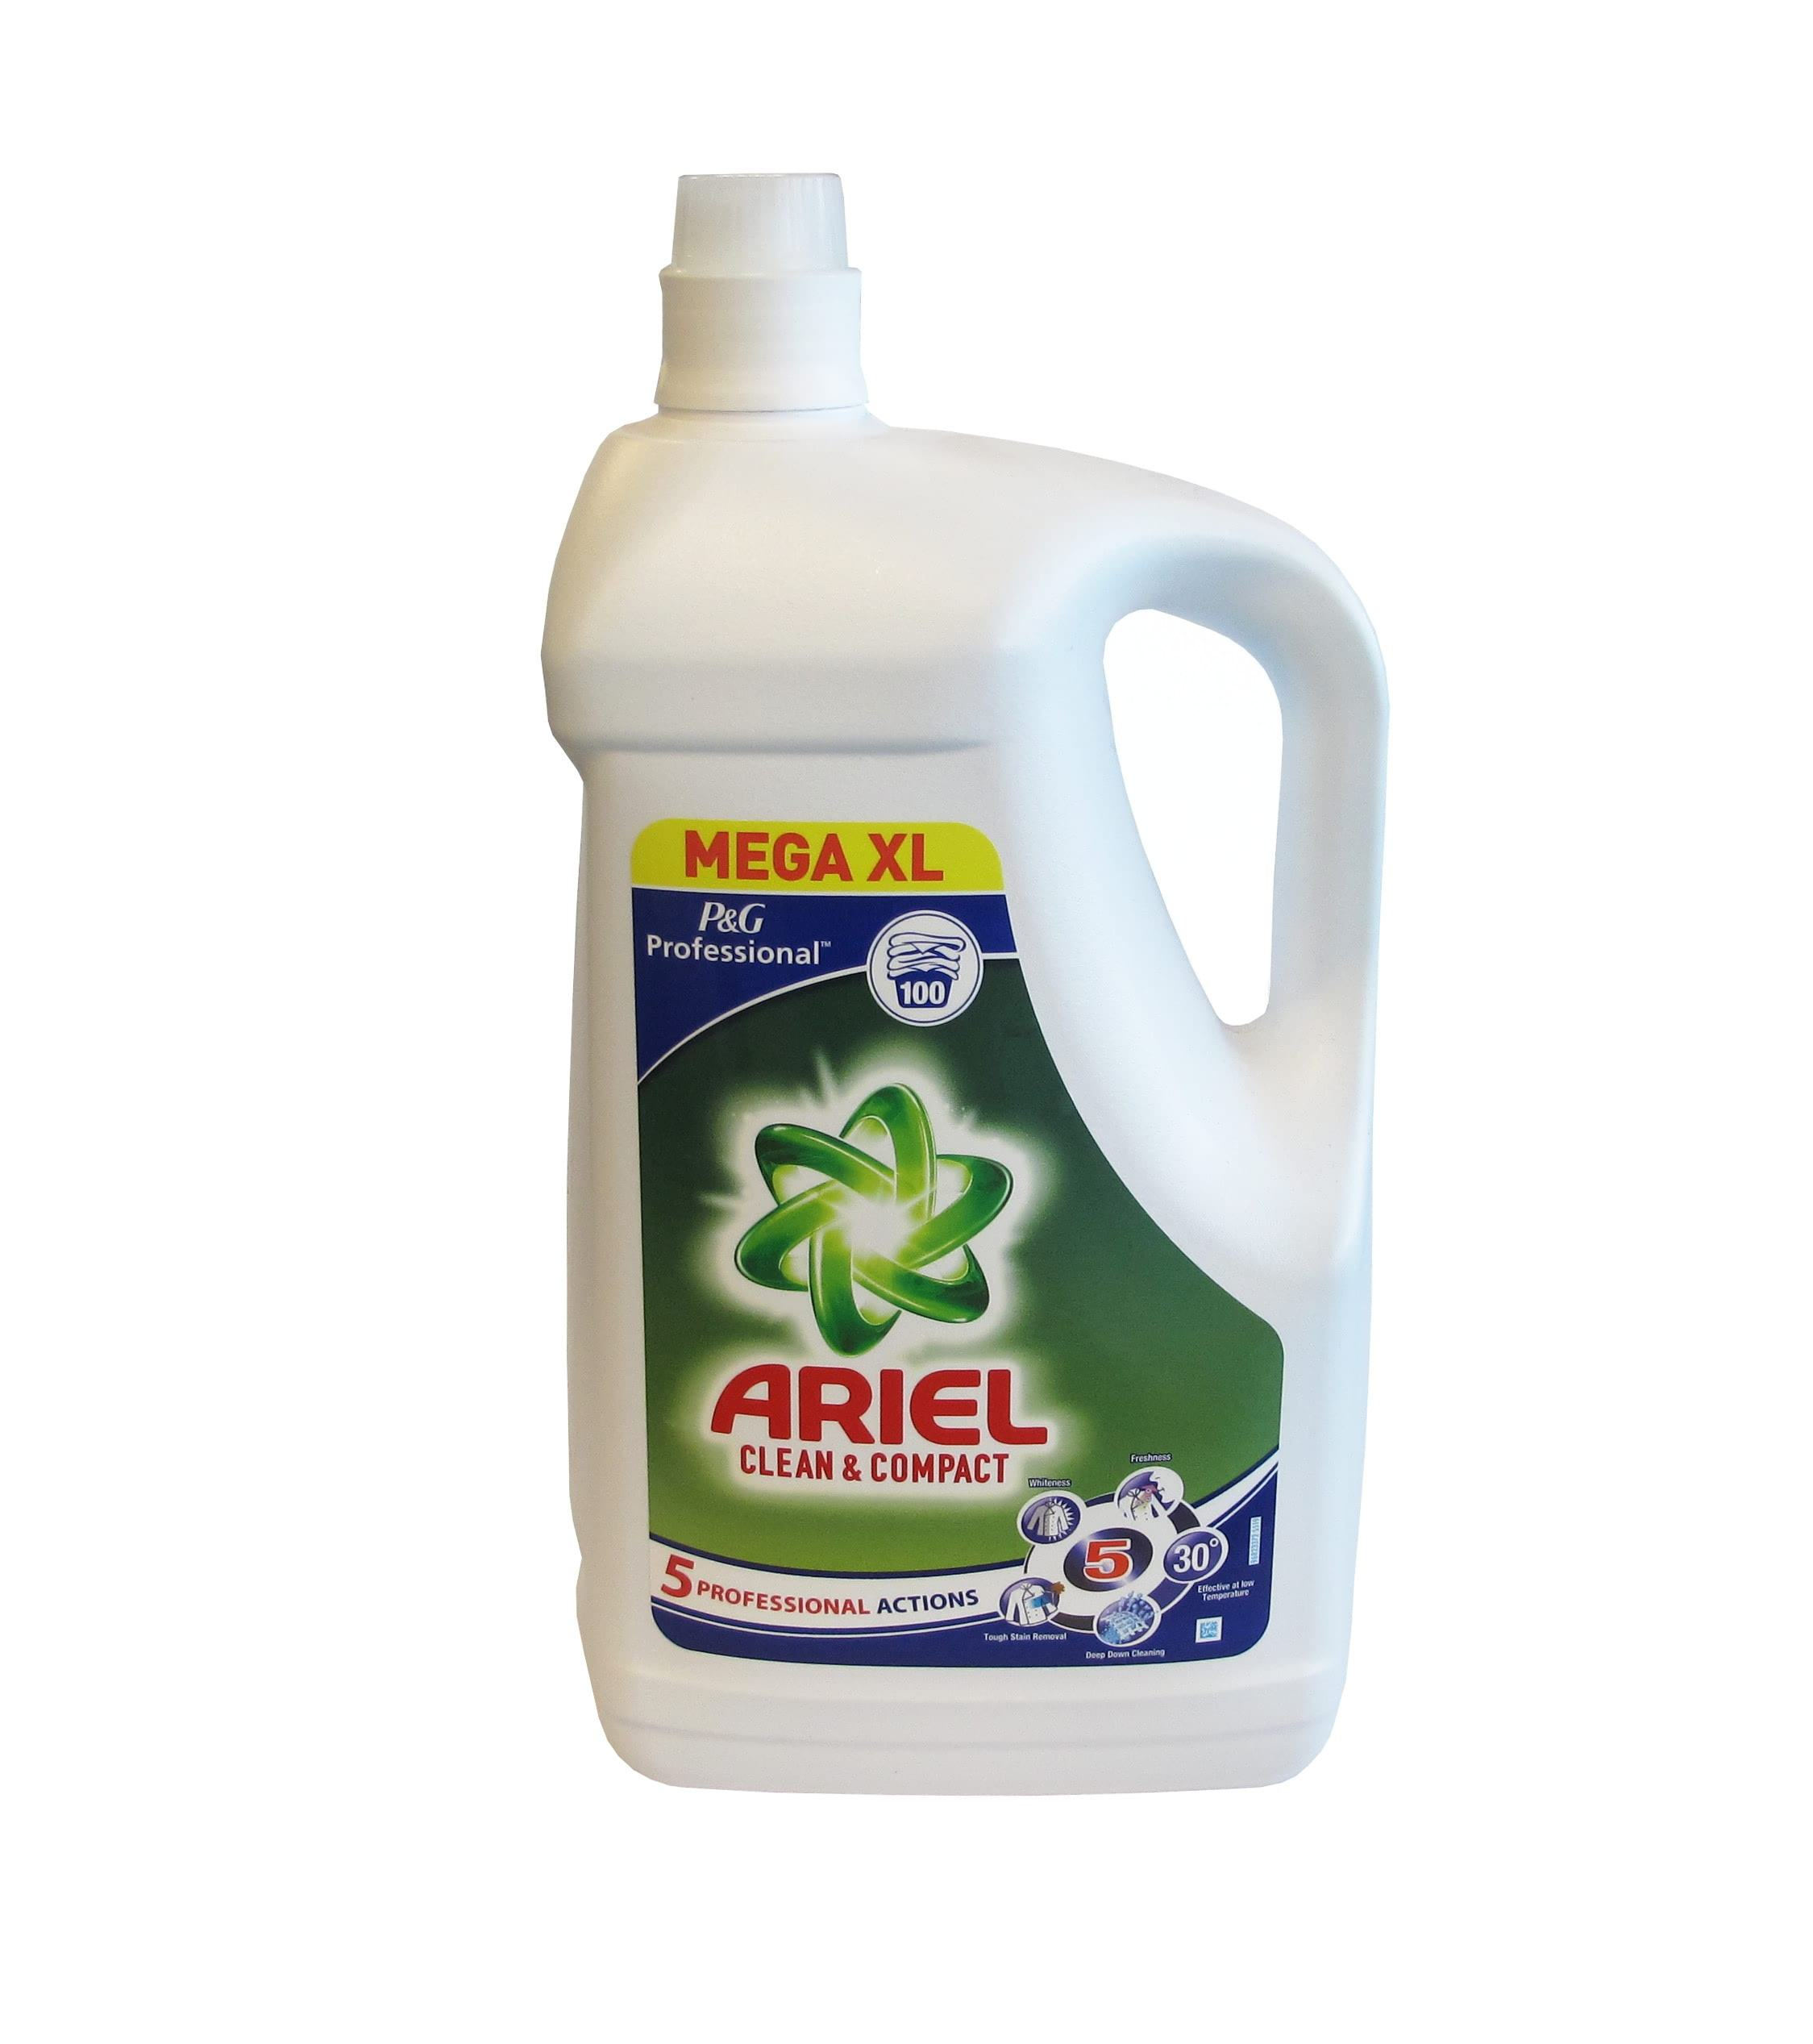 Ariel Matic Washing Machine Detergent Powder 2キロ4キロ5キロ、Ariel Matic Washing Machine Detergent Powder 2キロ4キロ5キロ